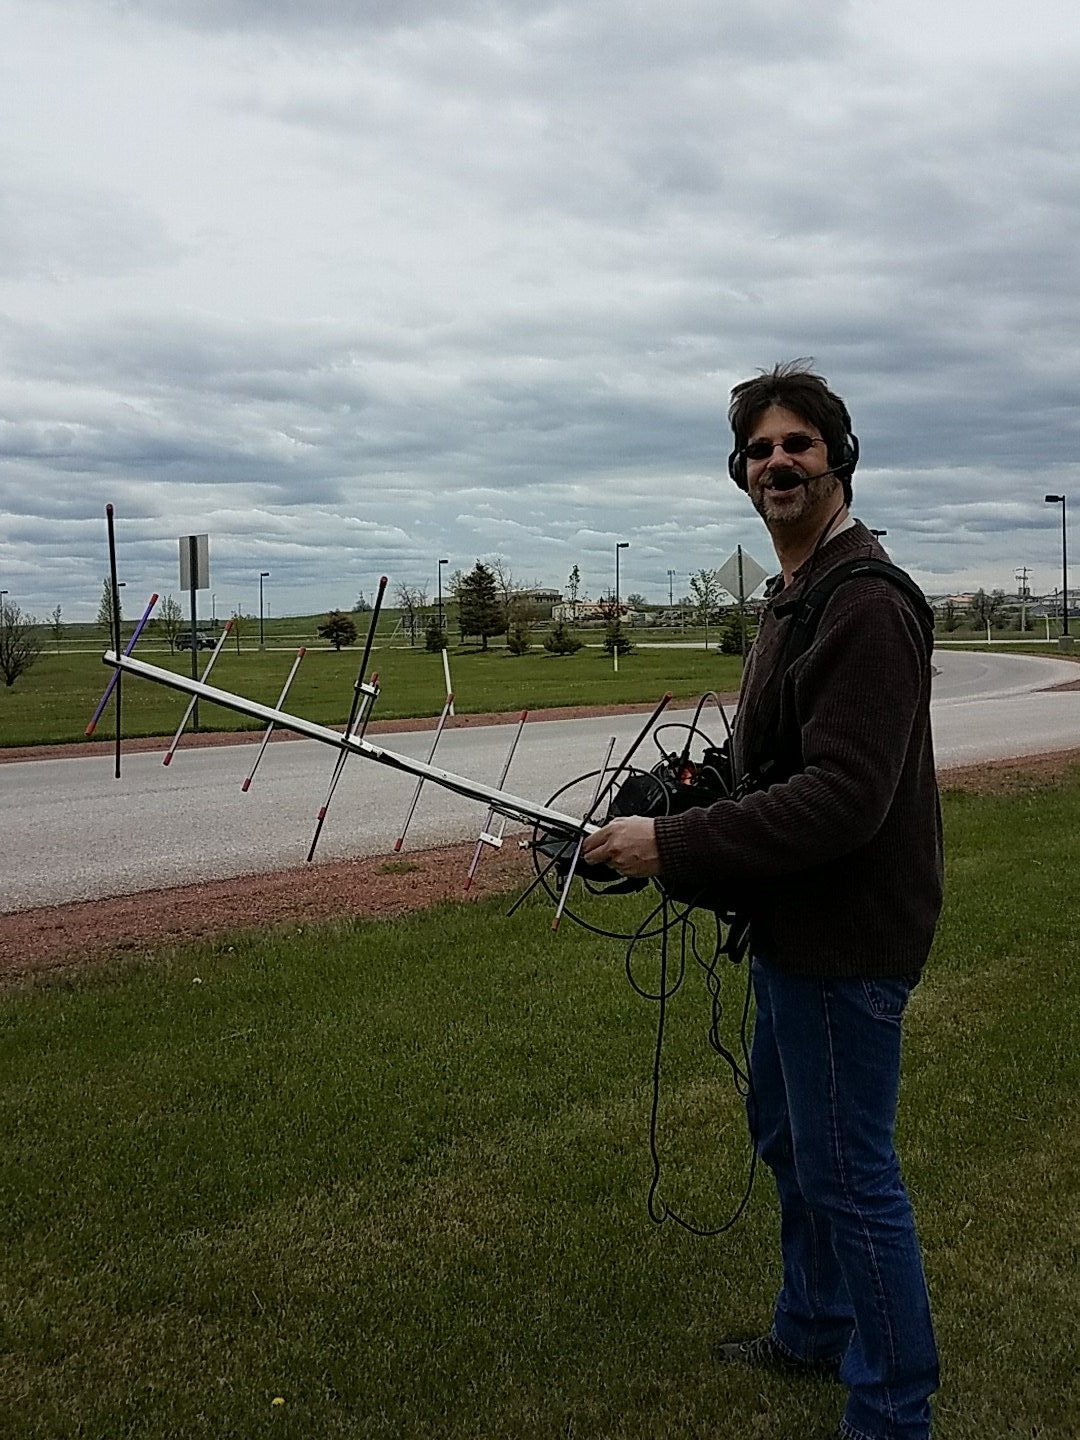 Sean Kutzko, KX9X operating /7 in Wyoming, worked Jose, EB1AO in May 2017. The satellite was just a few degrees above the horizon for both stations, which allowed a 7400km QSO.